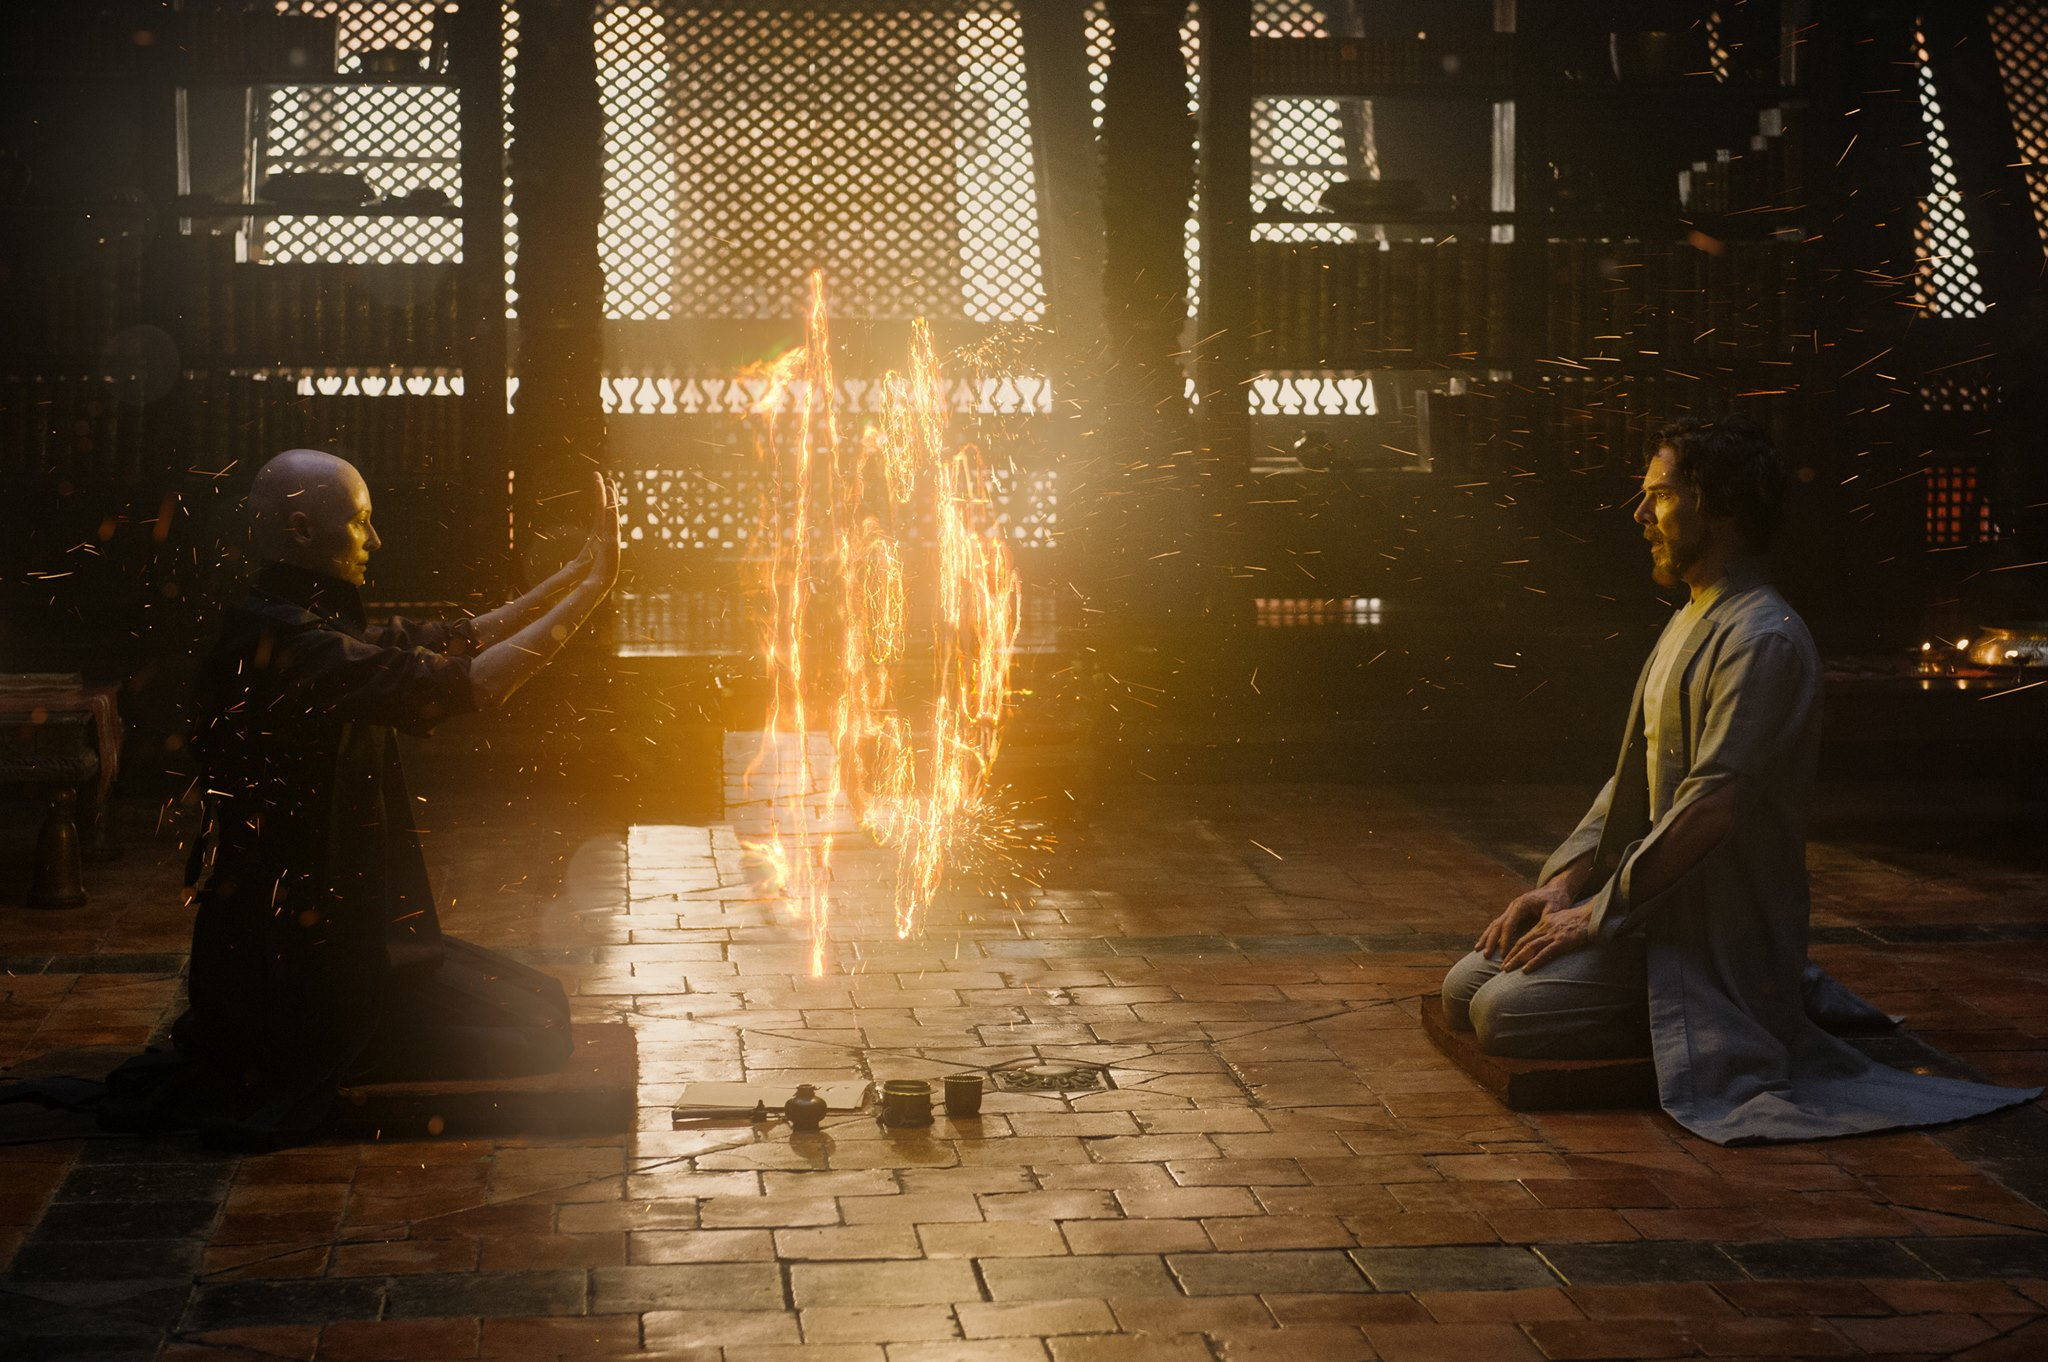 Photo from Marvel Studios Science rules · Doctor Strange is a superhero film based on the Marvel character of the same name. The movie, directed by Scott Derrickson, features actor Benedict Cumberbatch as protagonist Stephen Strange.